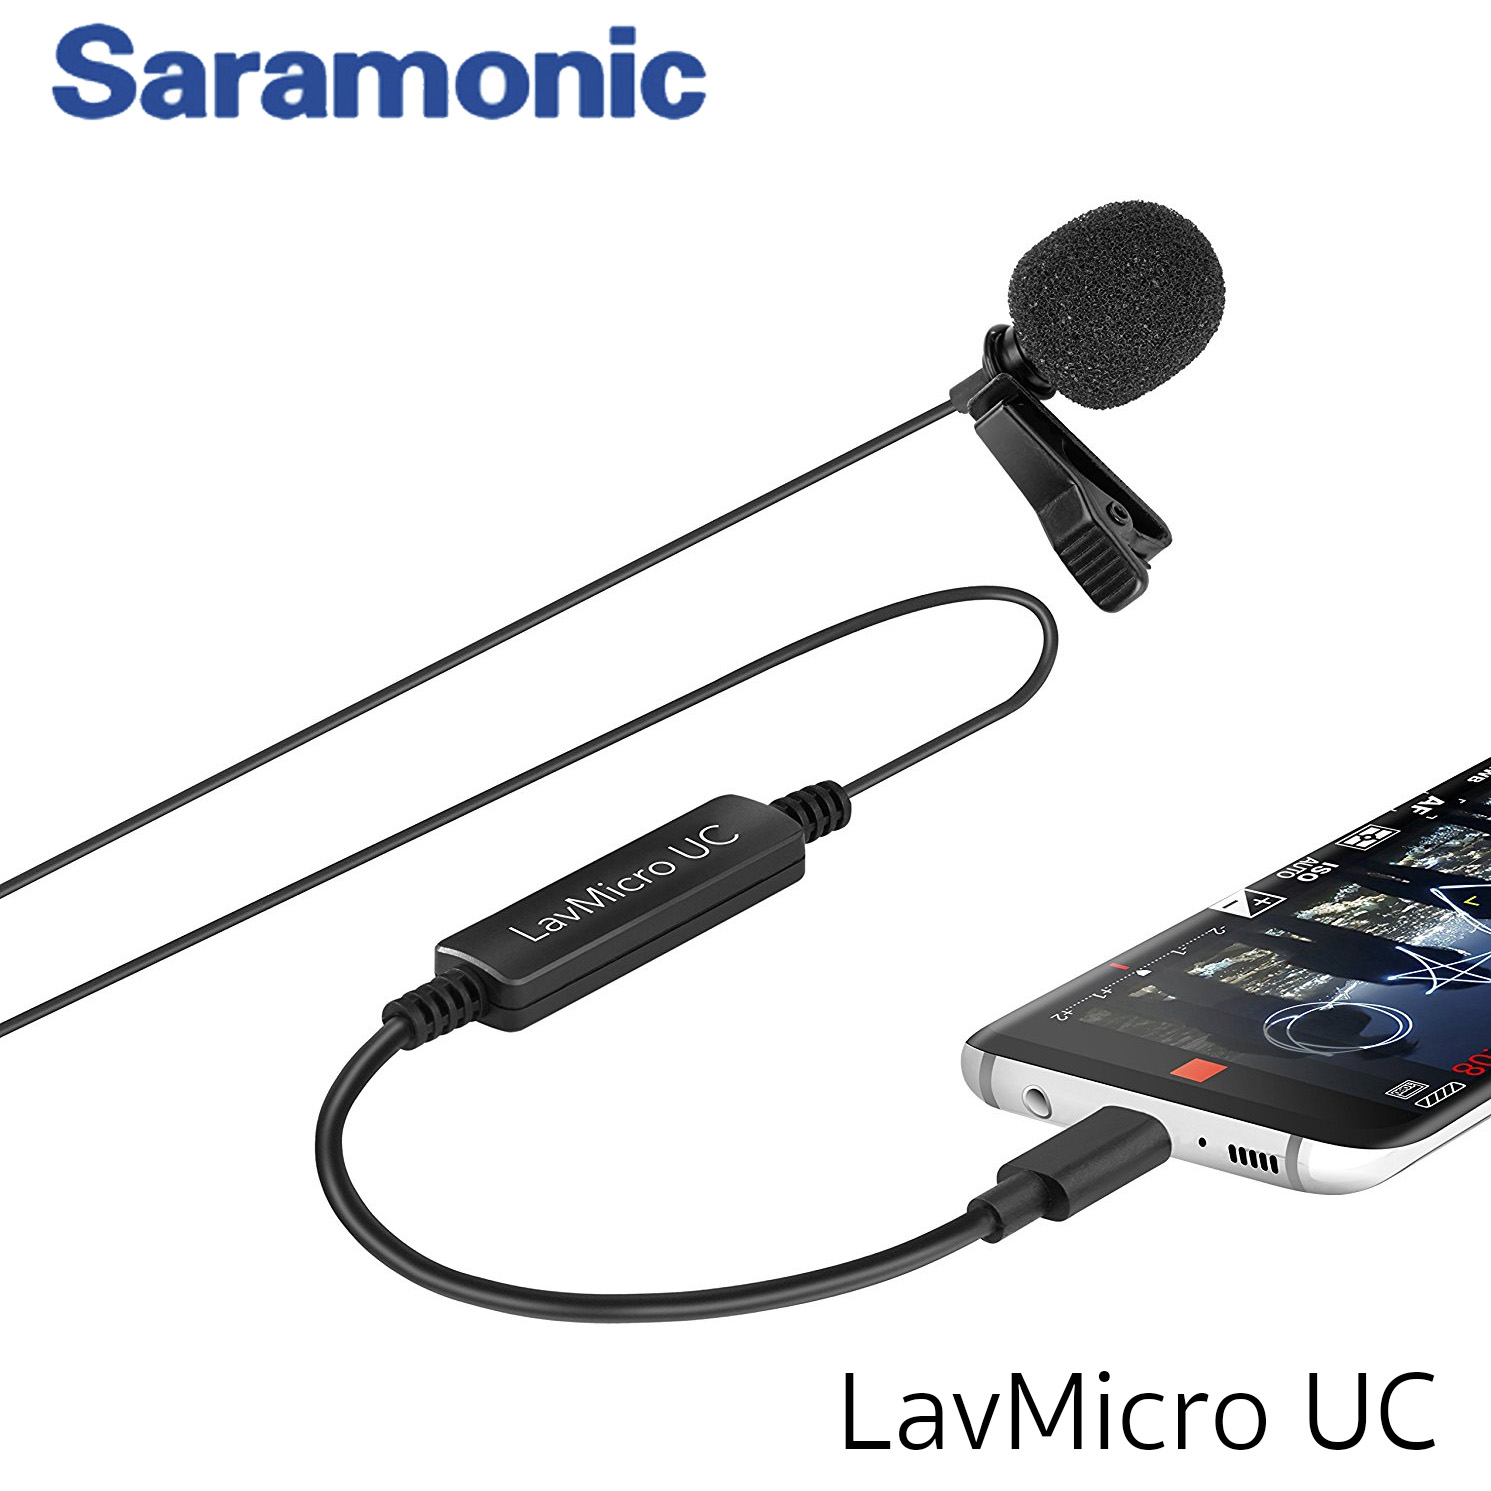 Saramonic LavMicro UC Broadcast-Quality Lavalier Omnidirectional Microphone for USB Type-C Devices Including Samsung Galaxy, LG, HTC Google Pixel, Google Nexus, Other USB C Type Smartphones